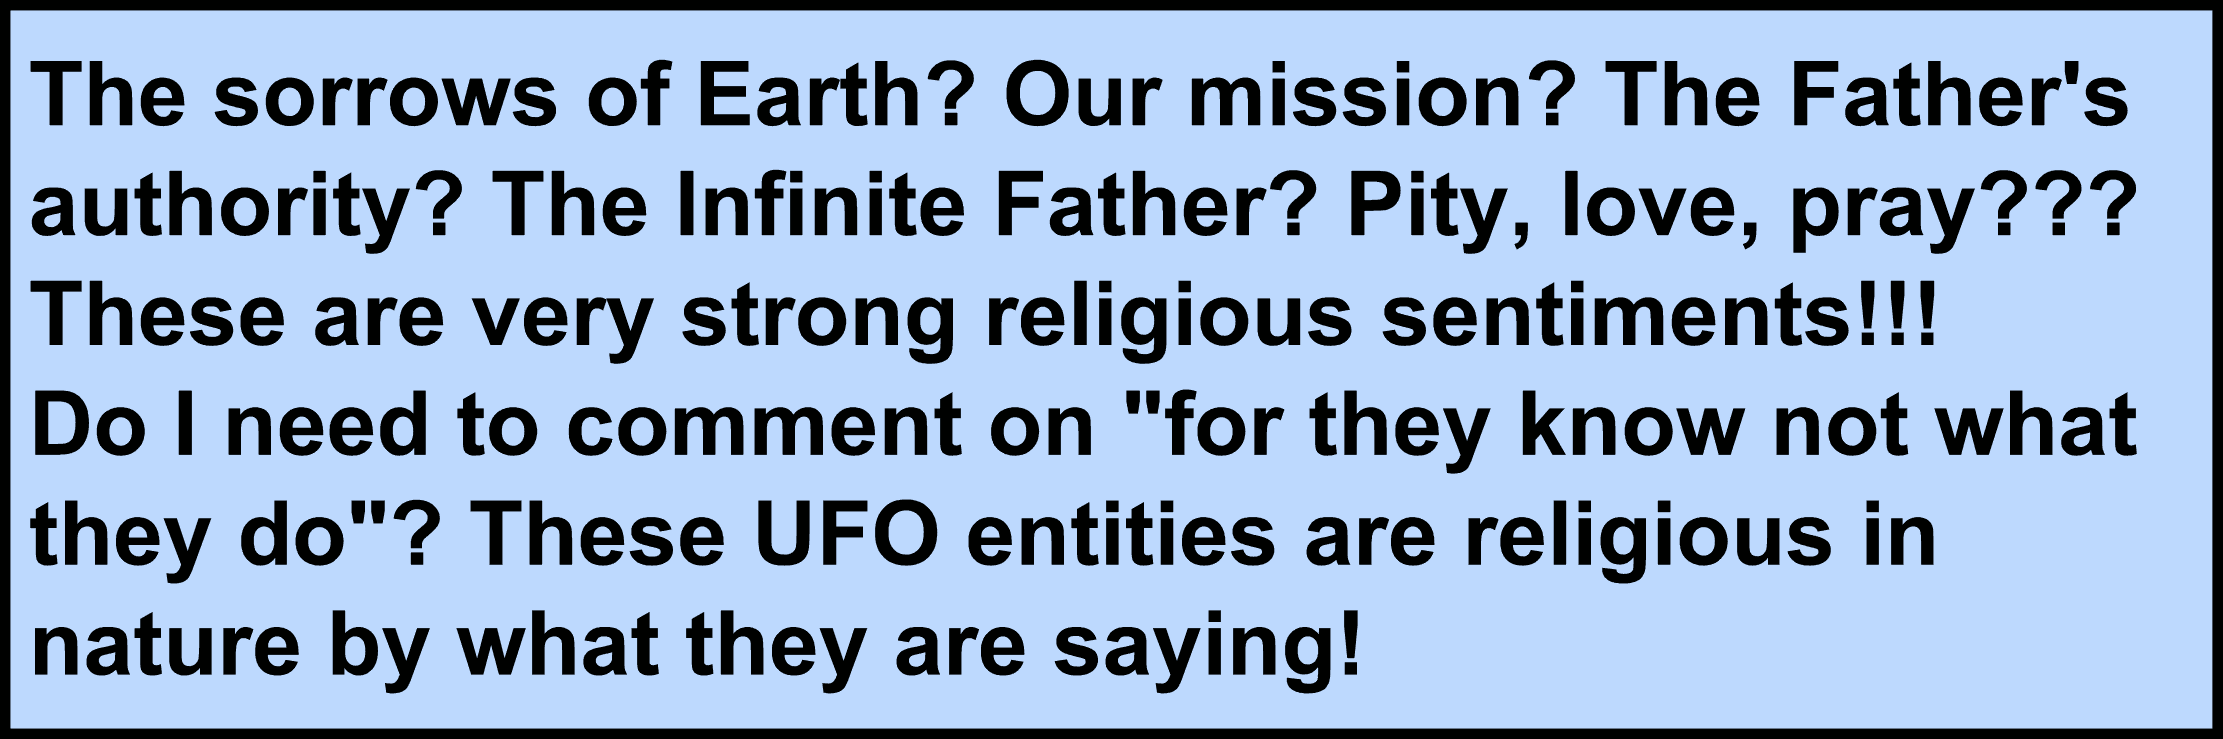 "Image:The sorrows of Earth? Our mission? The Father's authority? The Infinite Father? Pity, love, pray??? These are very strong religious sentiments!!! Do I need to comment on ""for they know not what they do""? These UFO entities are religious in nature by what they are saying!"